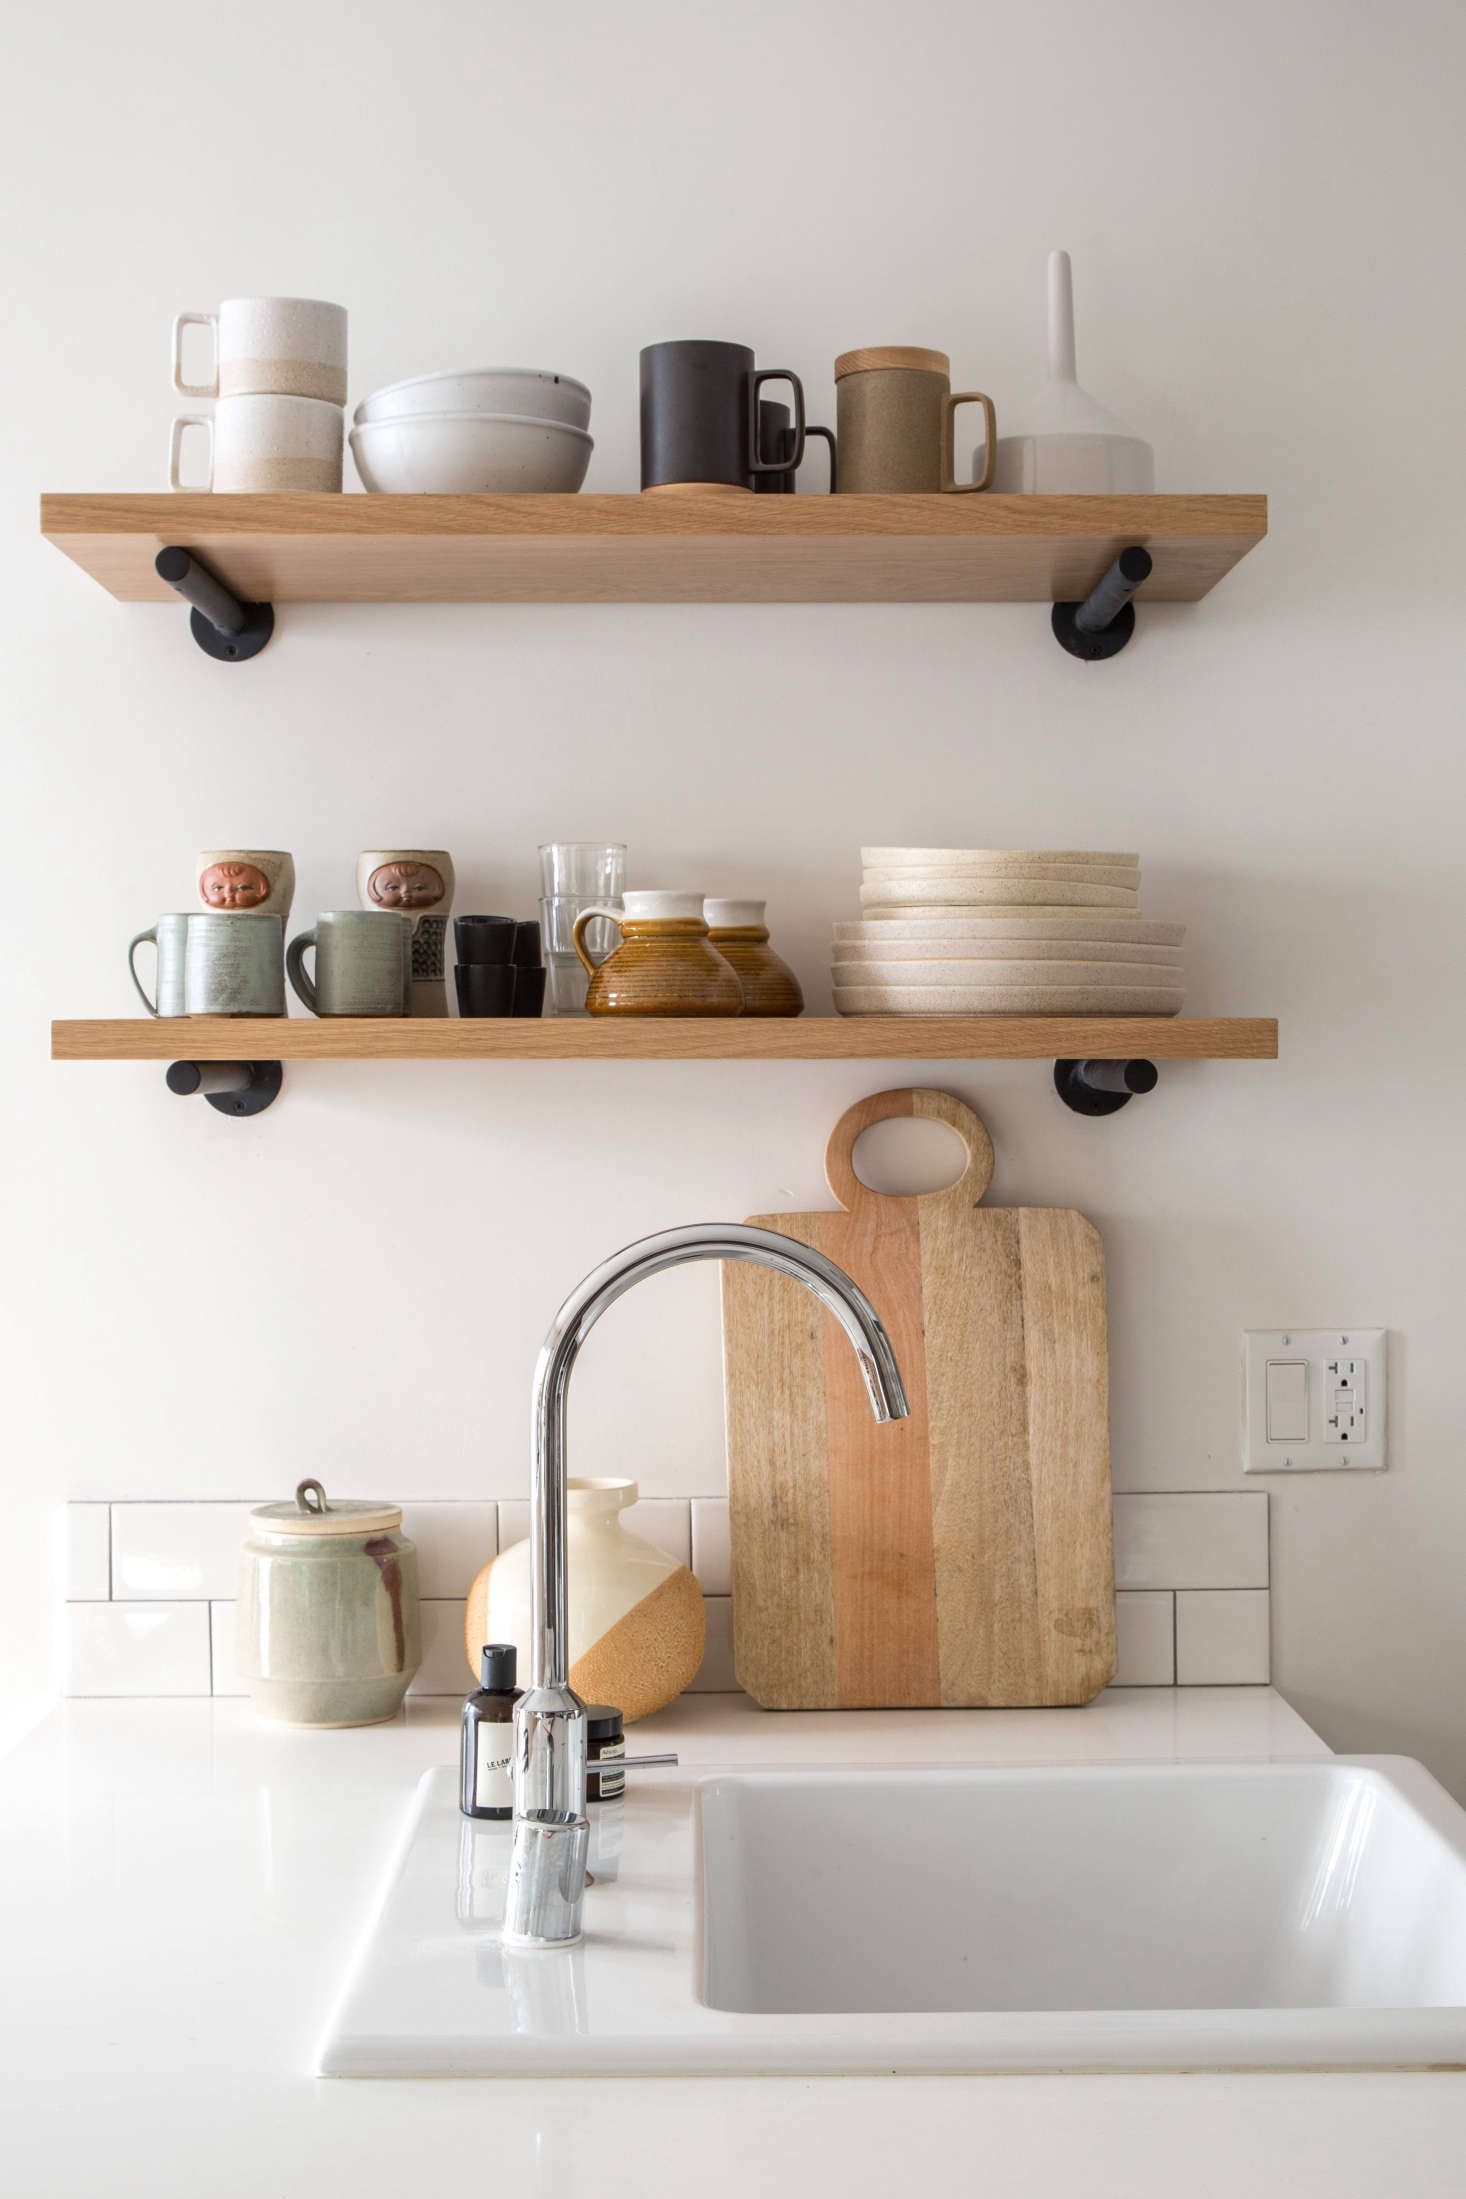 Remodeling 101 Single Bowl Vs Double Bowl Sinks In The Kitchen Remodelista